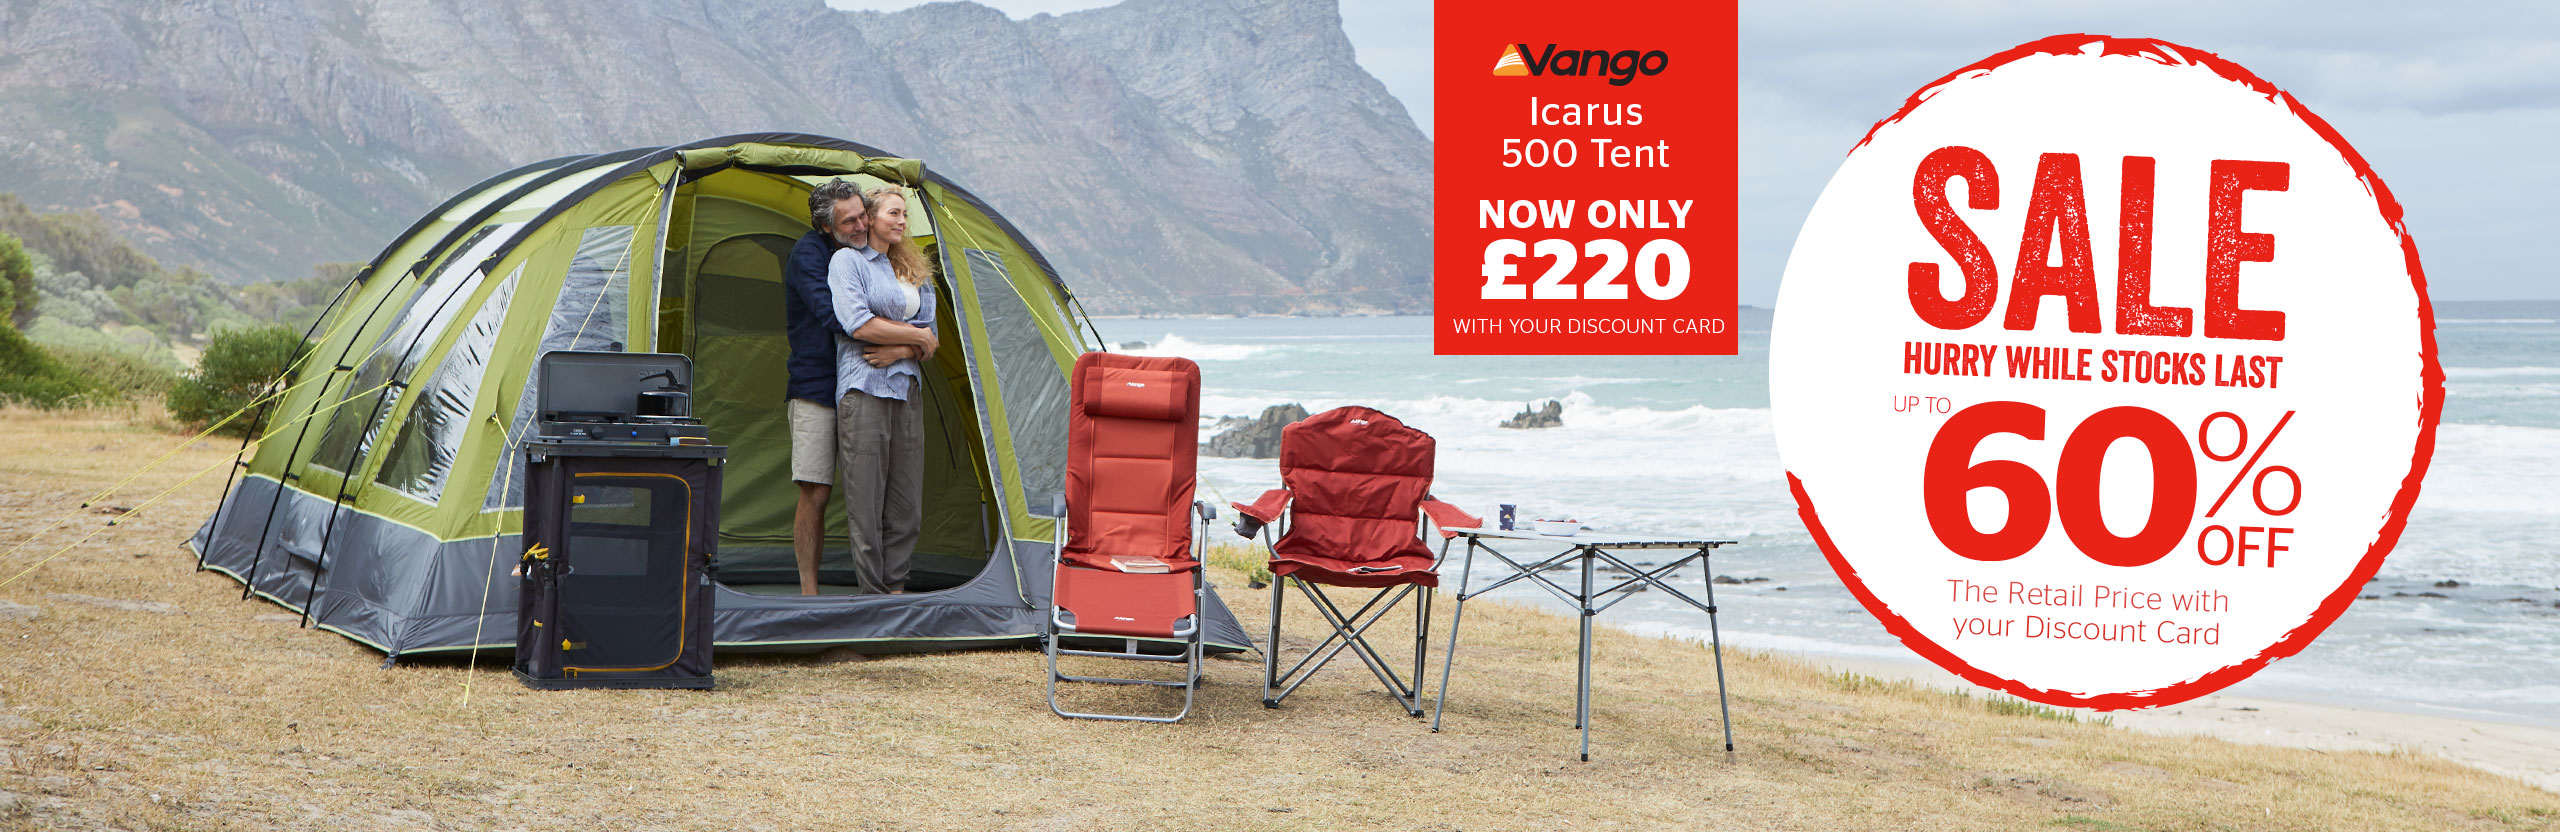 TENTS & CAMPING SALE - Vango Icarus